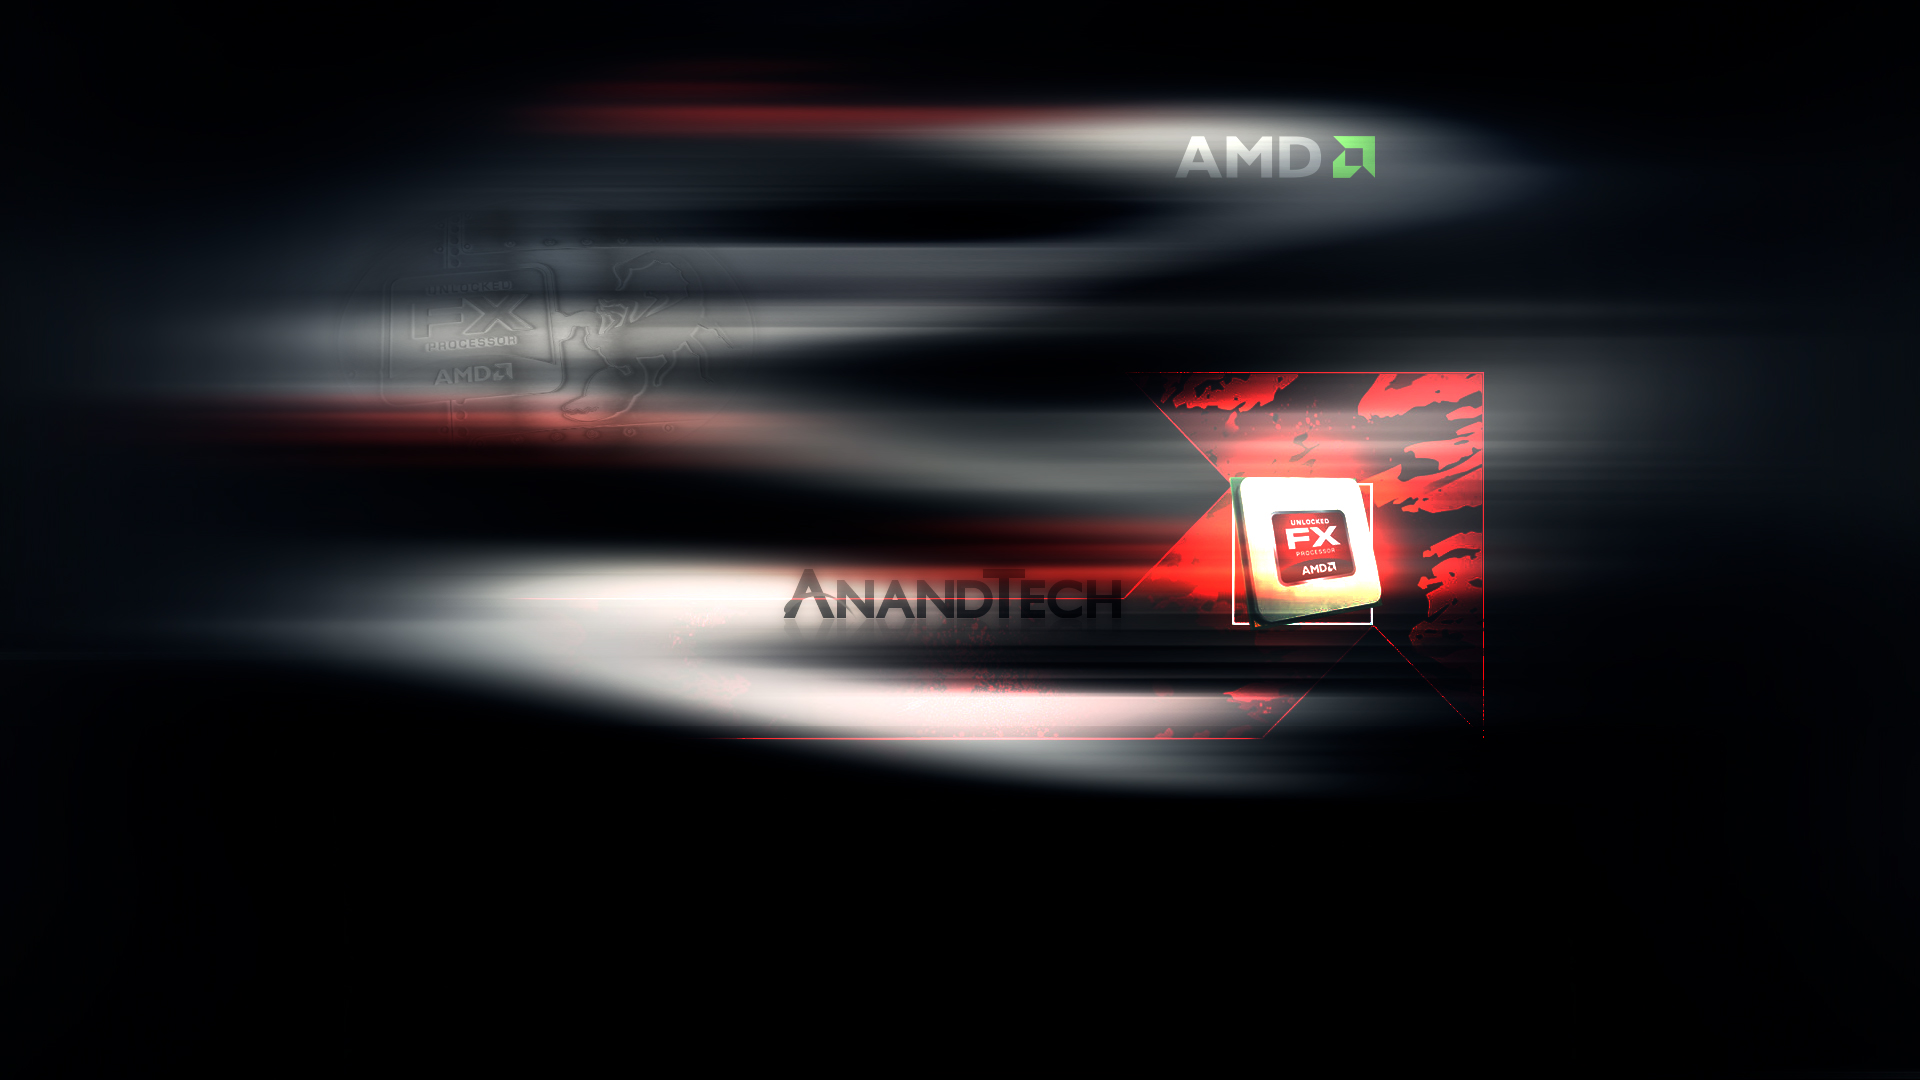 amd hd wallpaper - wallpapersafari